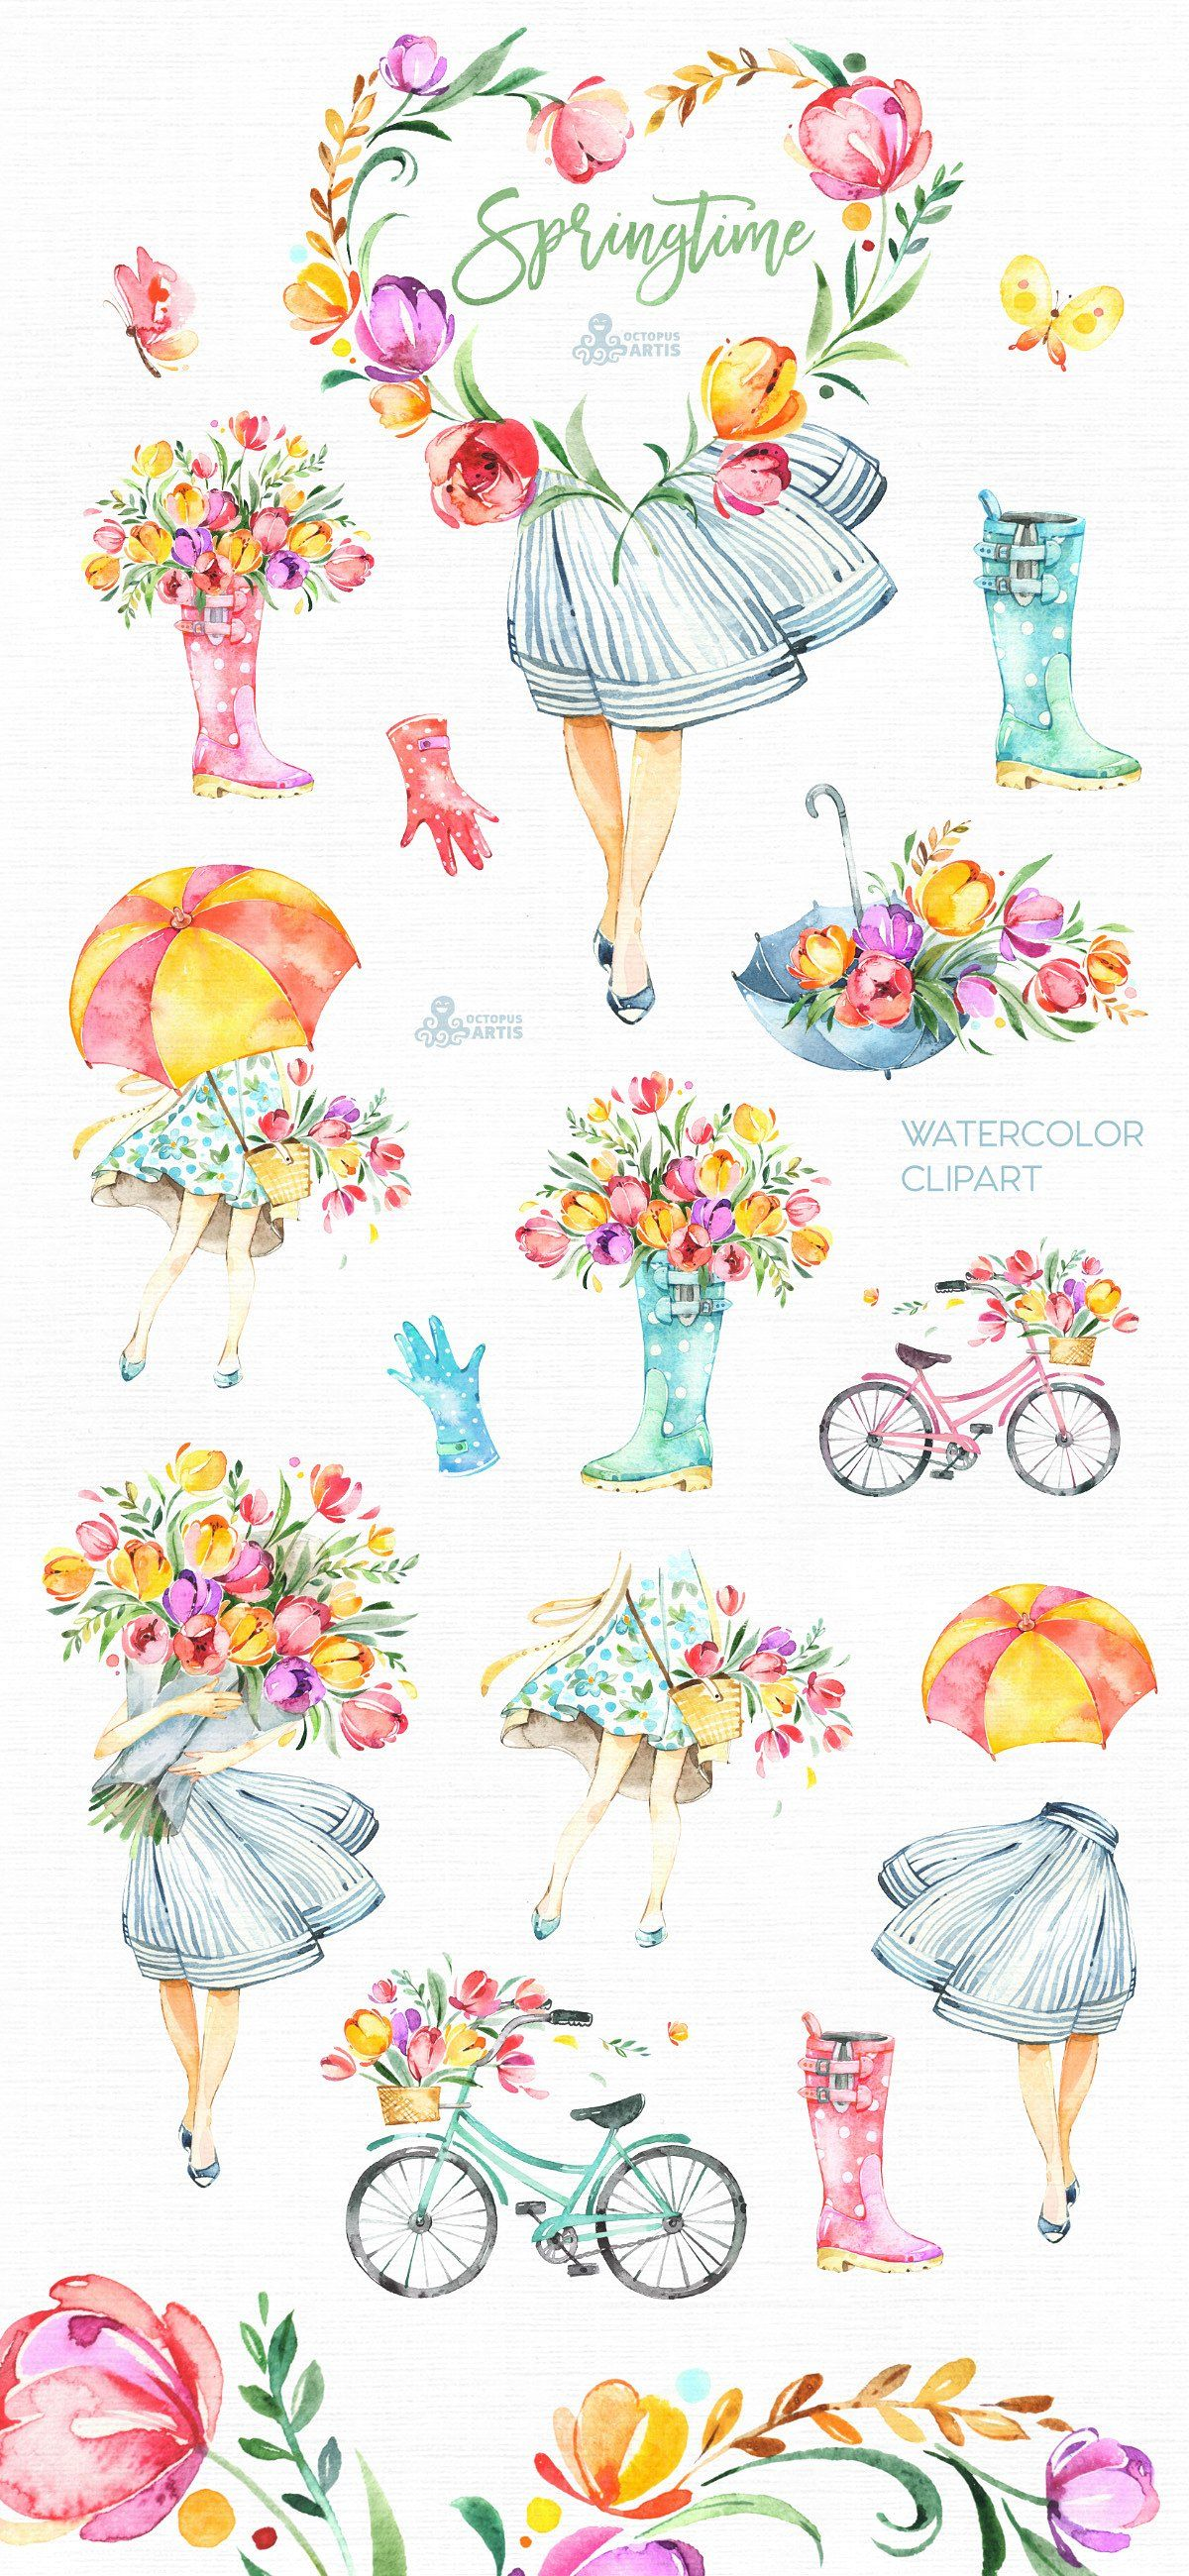 Springtime Watercolor Collection Spring Illustration Flower